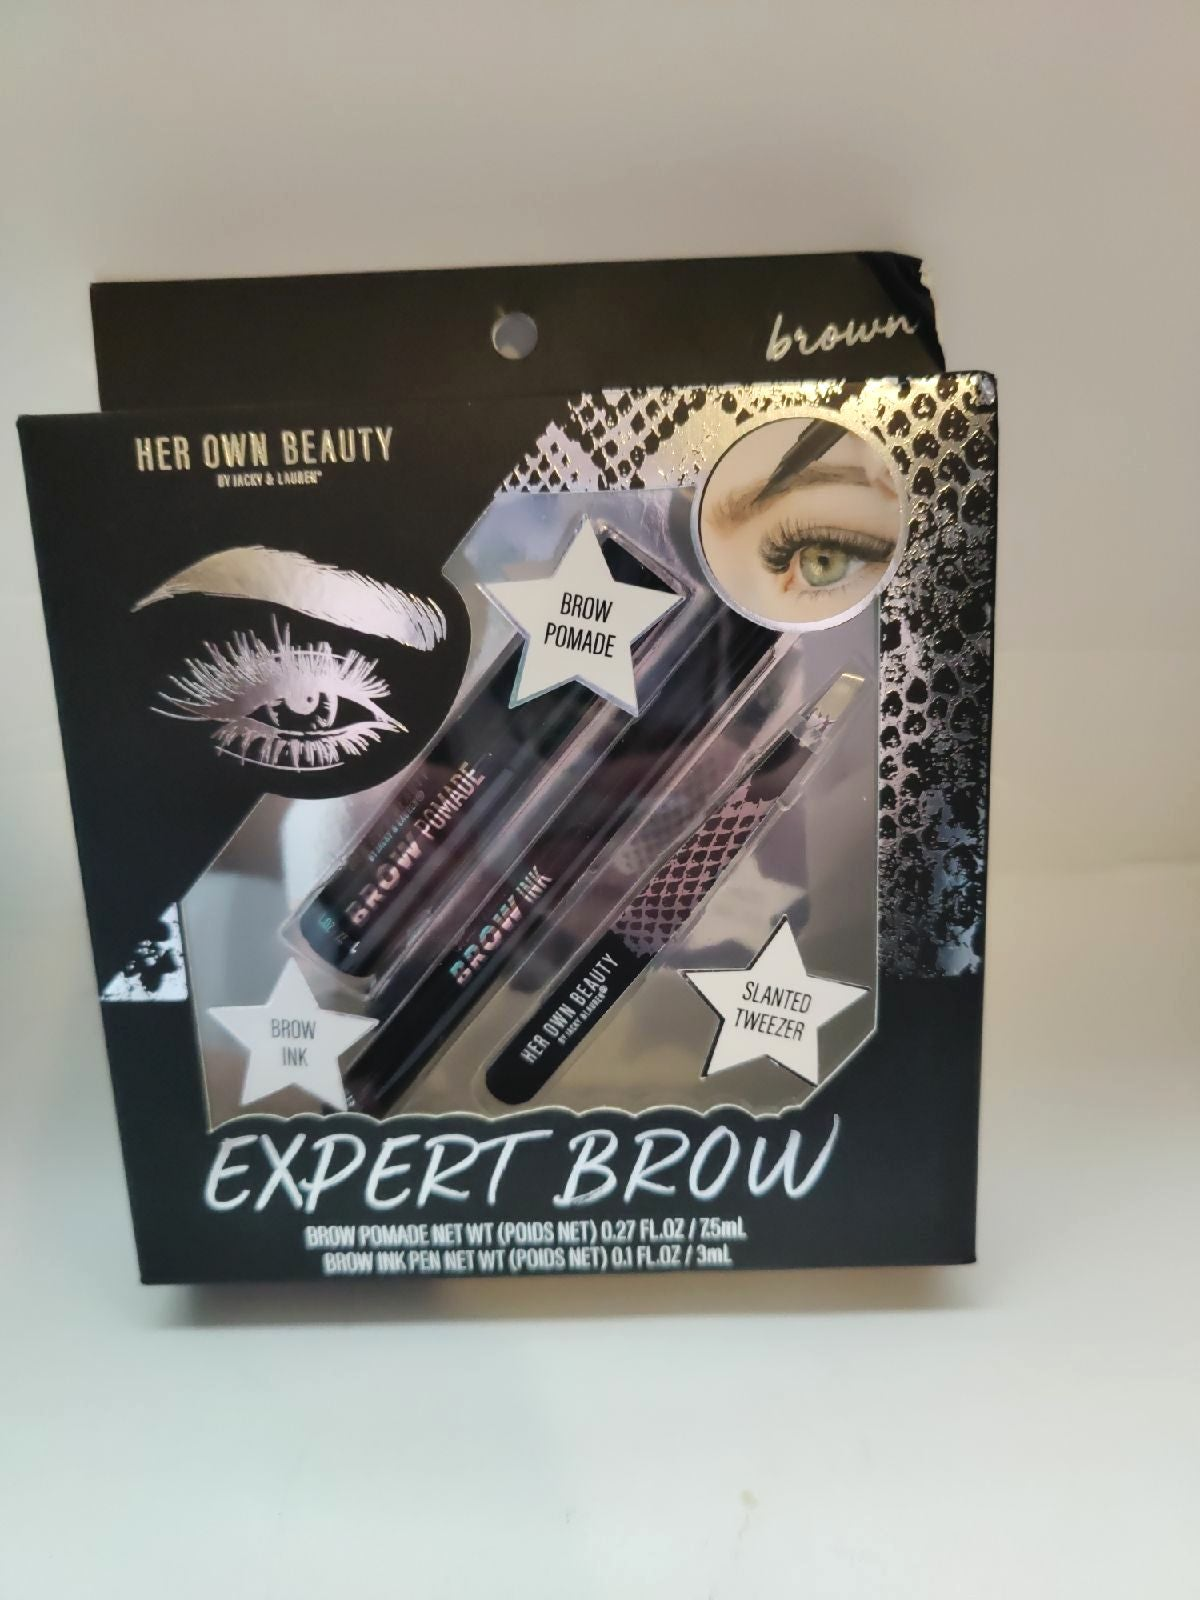 Her Own Beauty Expert Brow kit